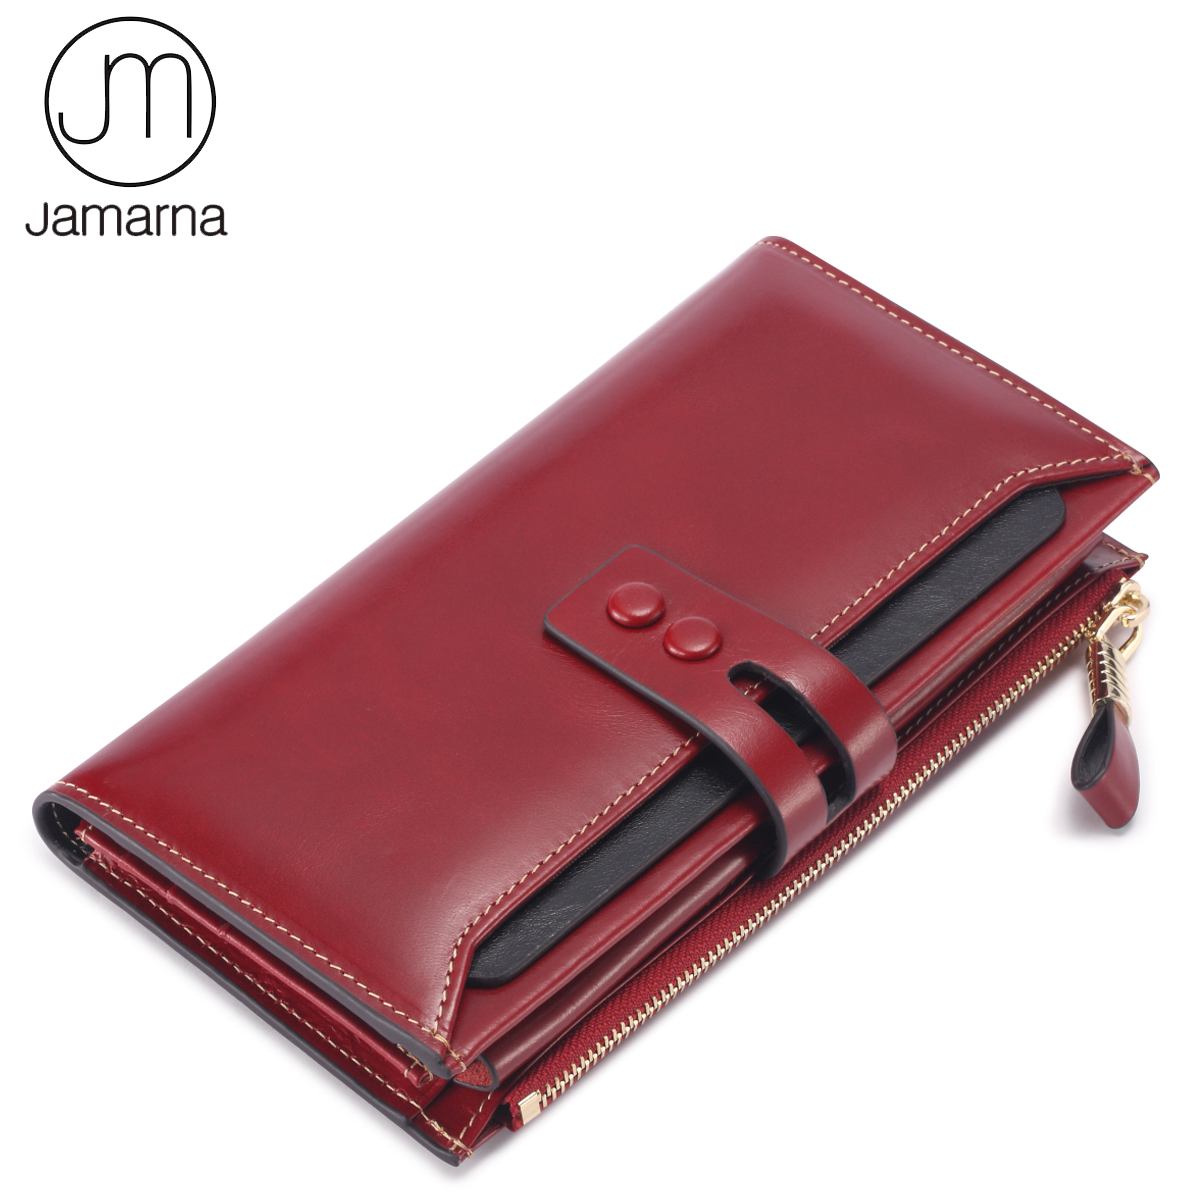 Jamarna Brand Women Wallets Genuine Leather Long Clutch